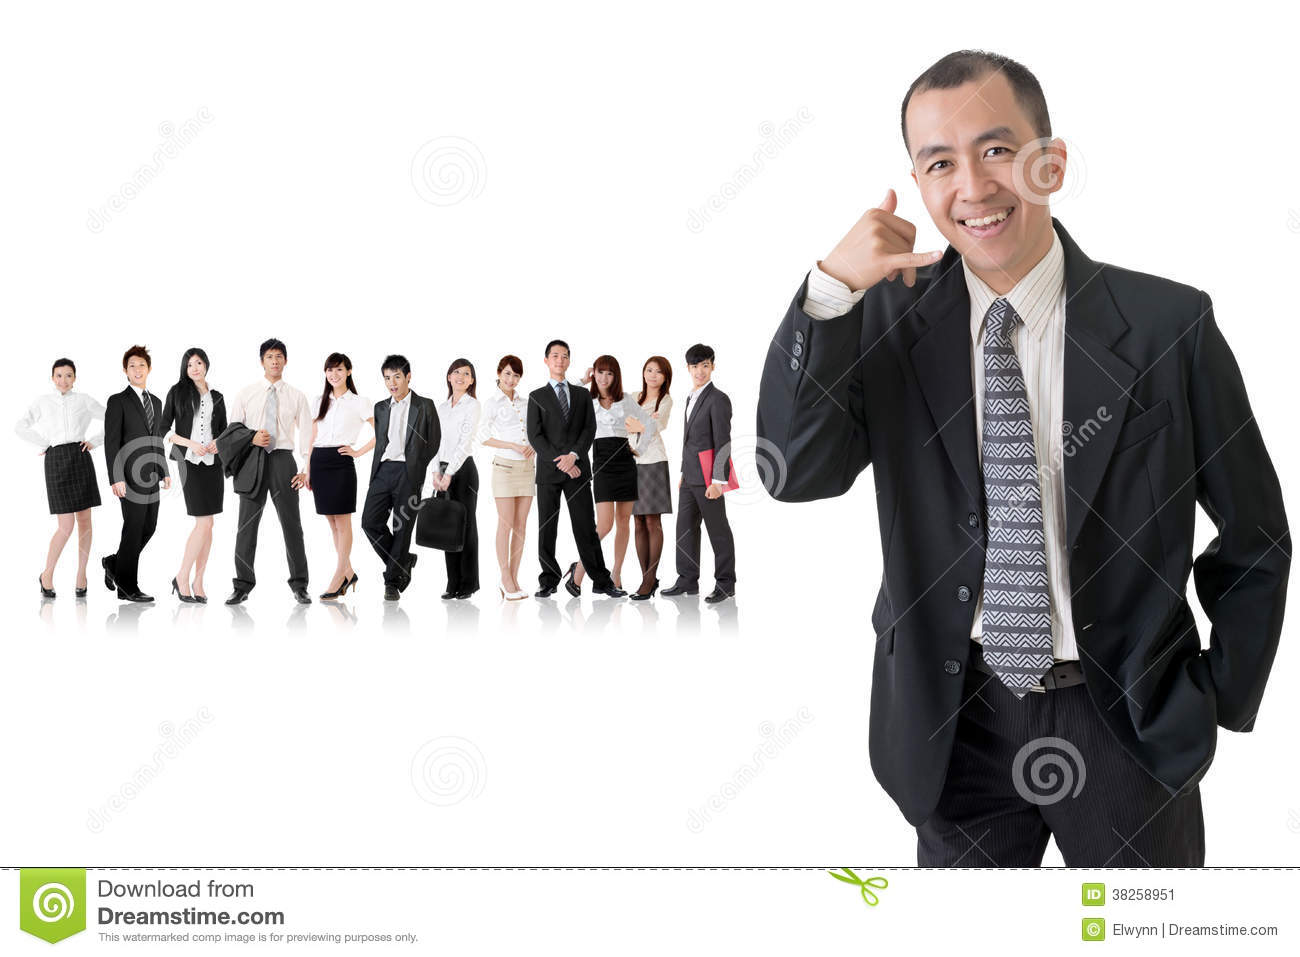 Call Me Gesture Stock Image - Image: 38258951